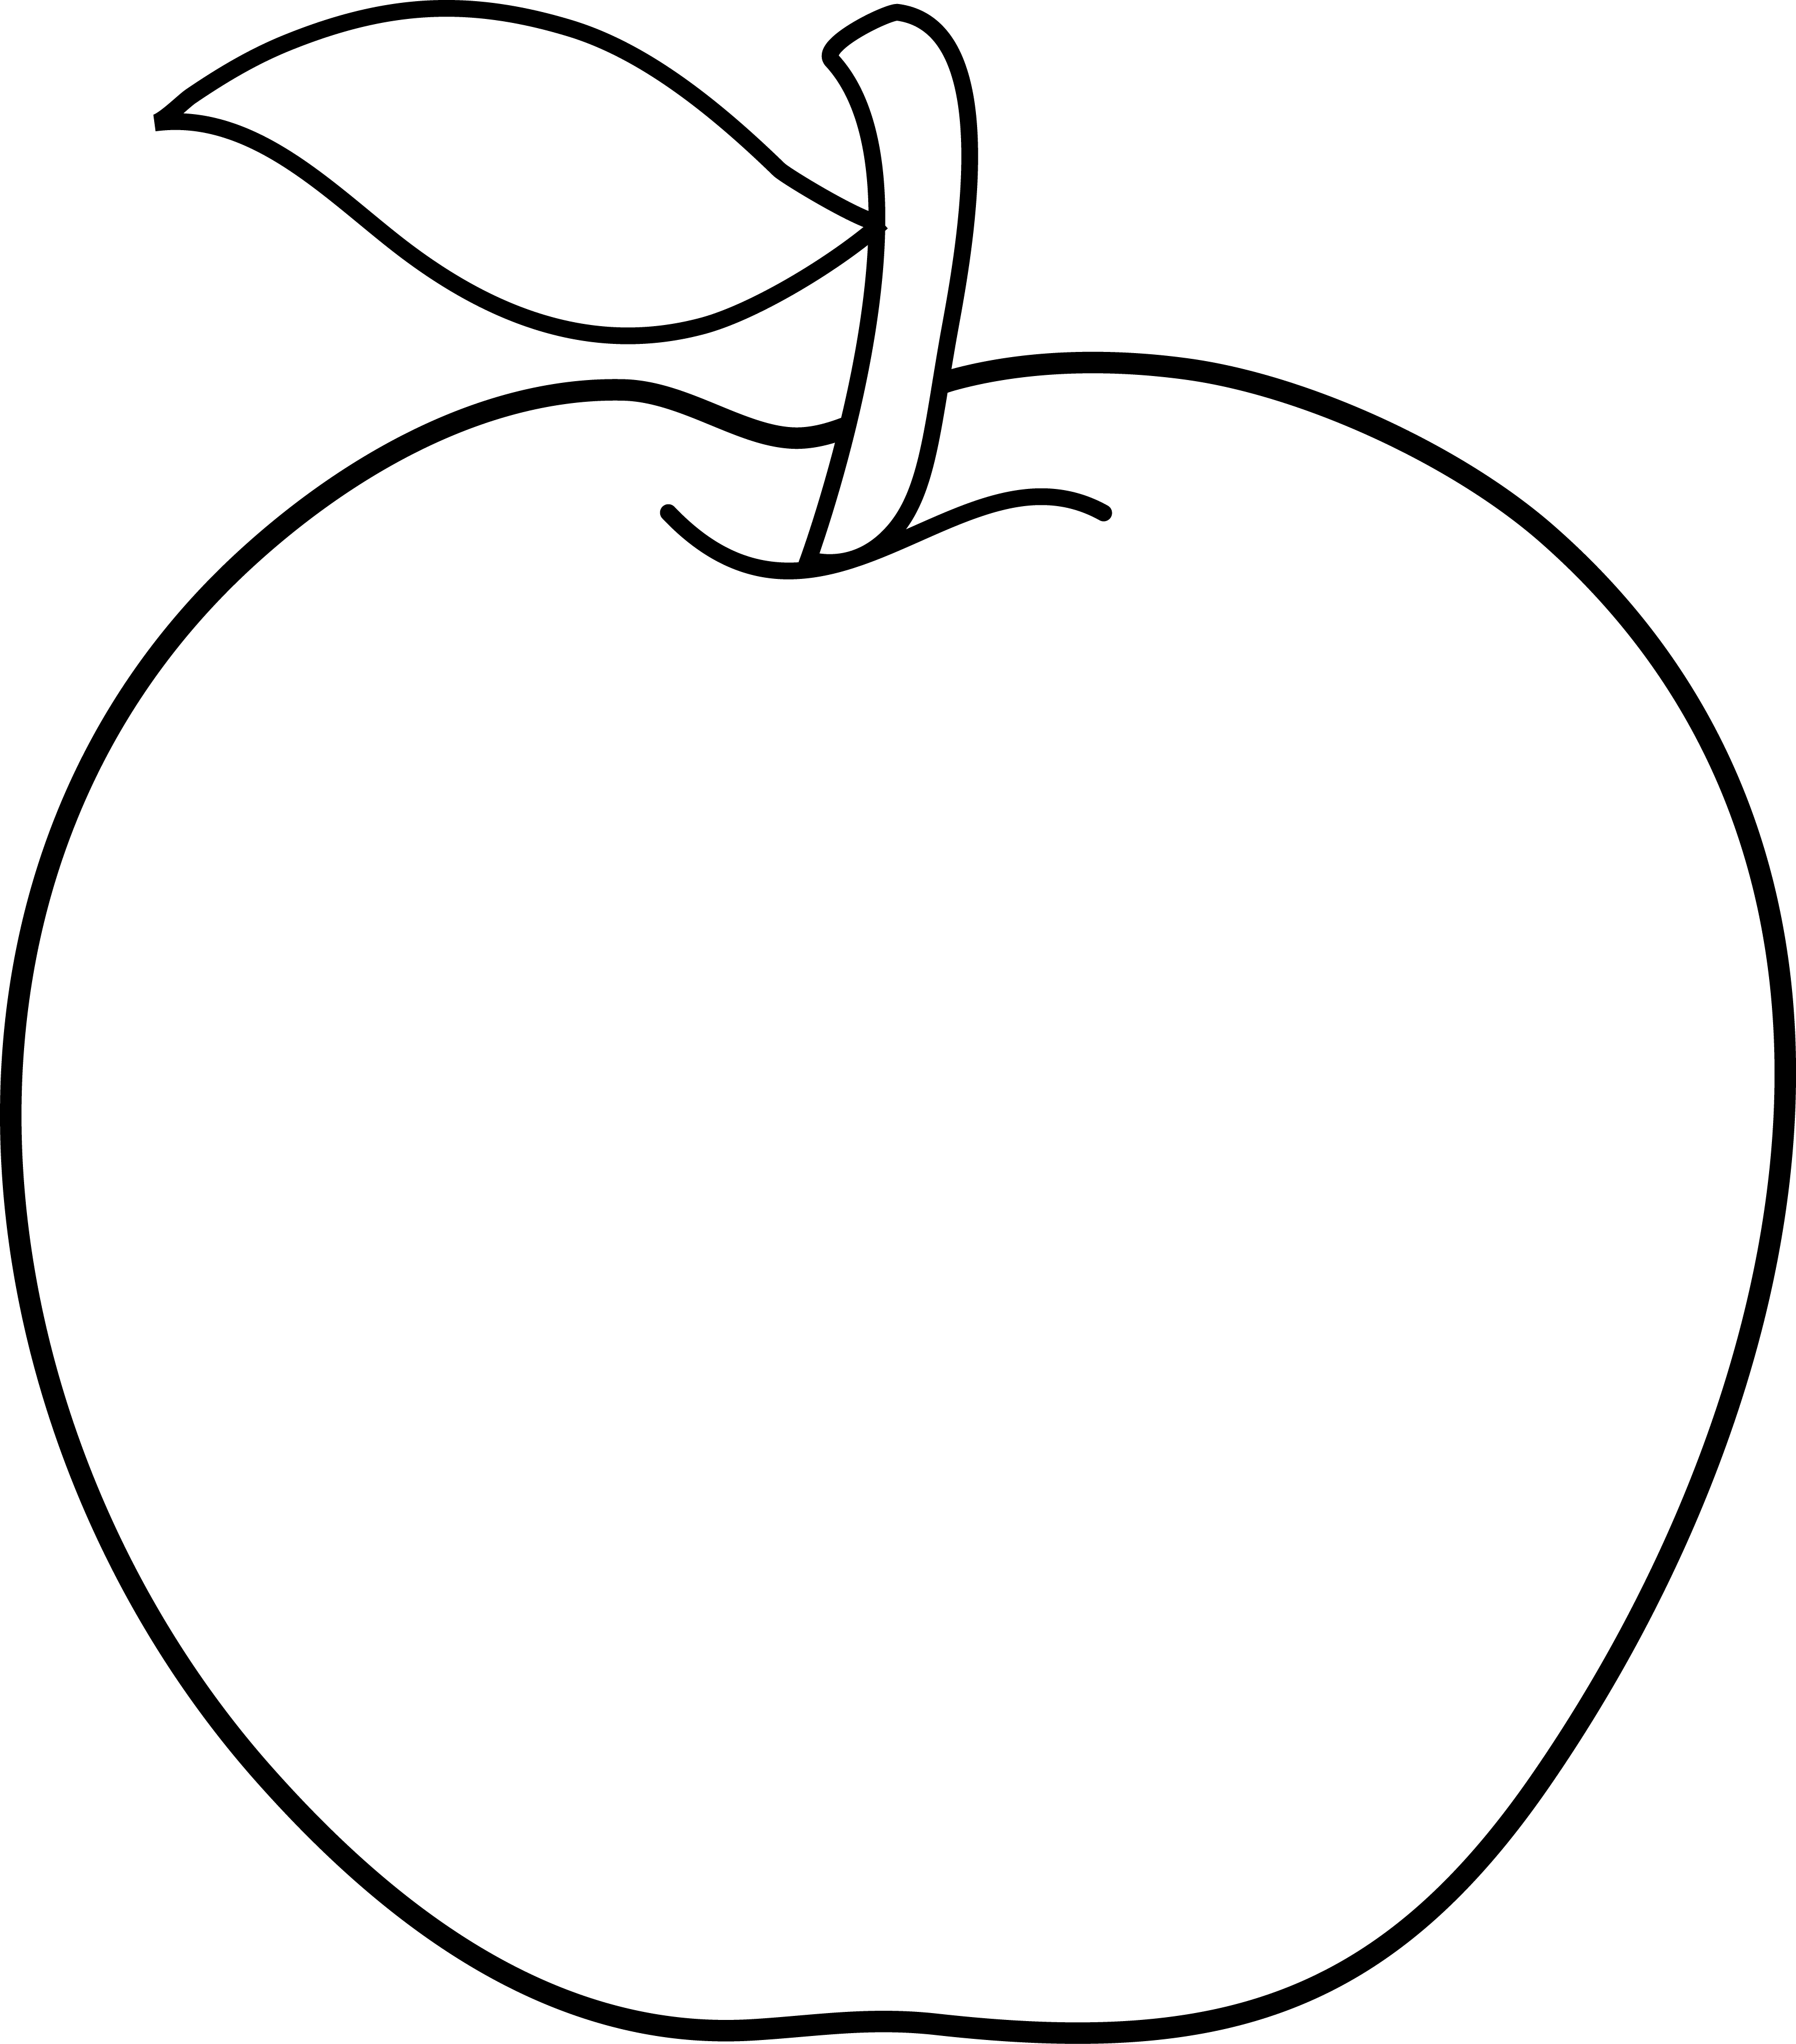 Apple core clipart black and white free graphic library Apple Clipart Black And White | Clipart Panda - Free Clipart Images graphic library